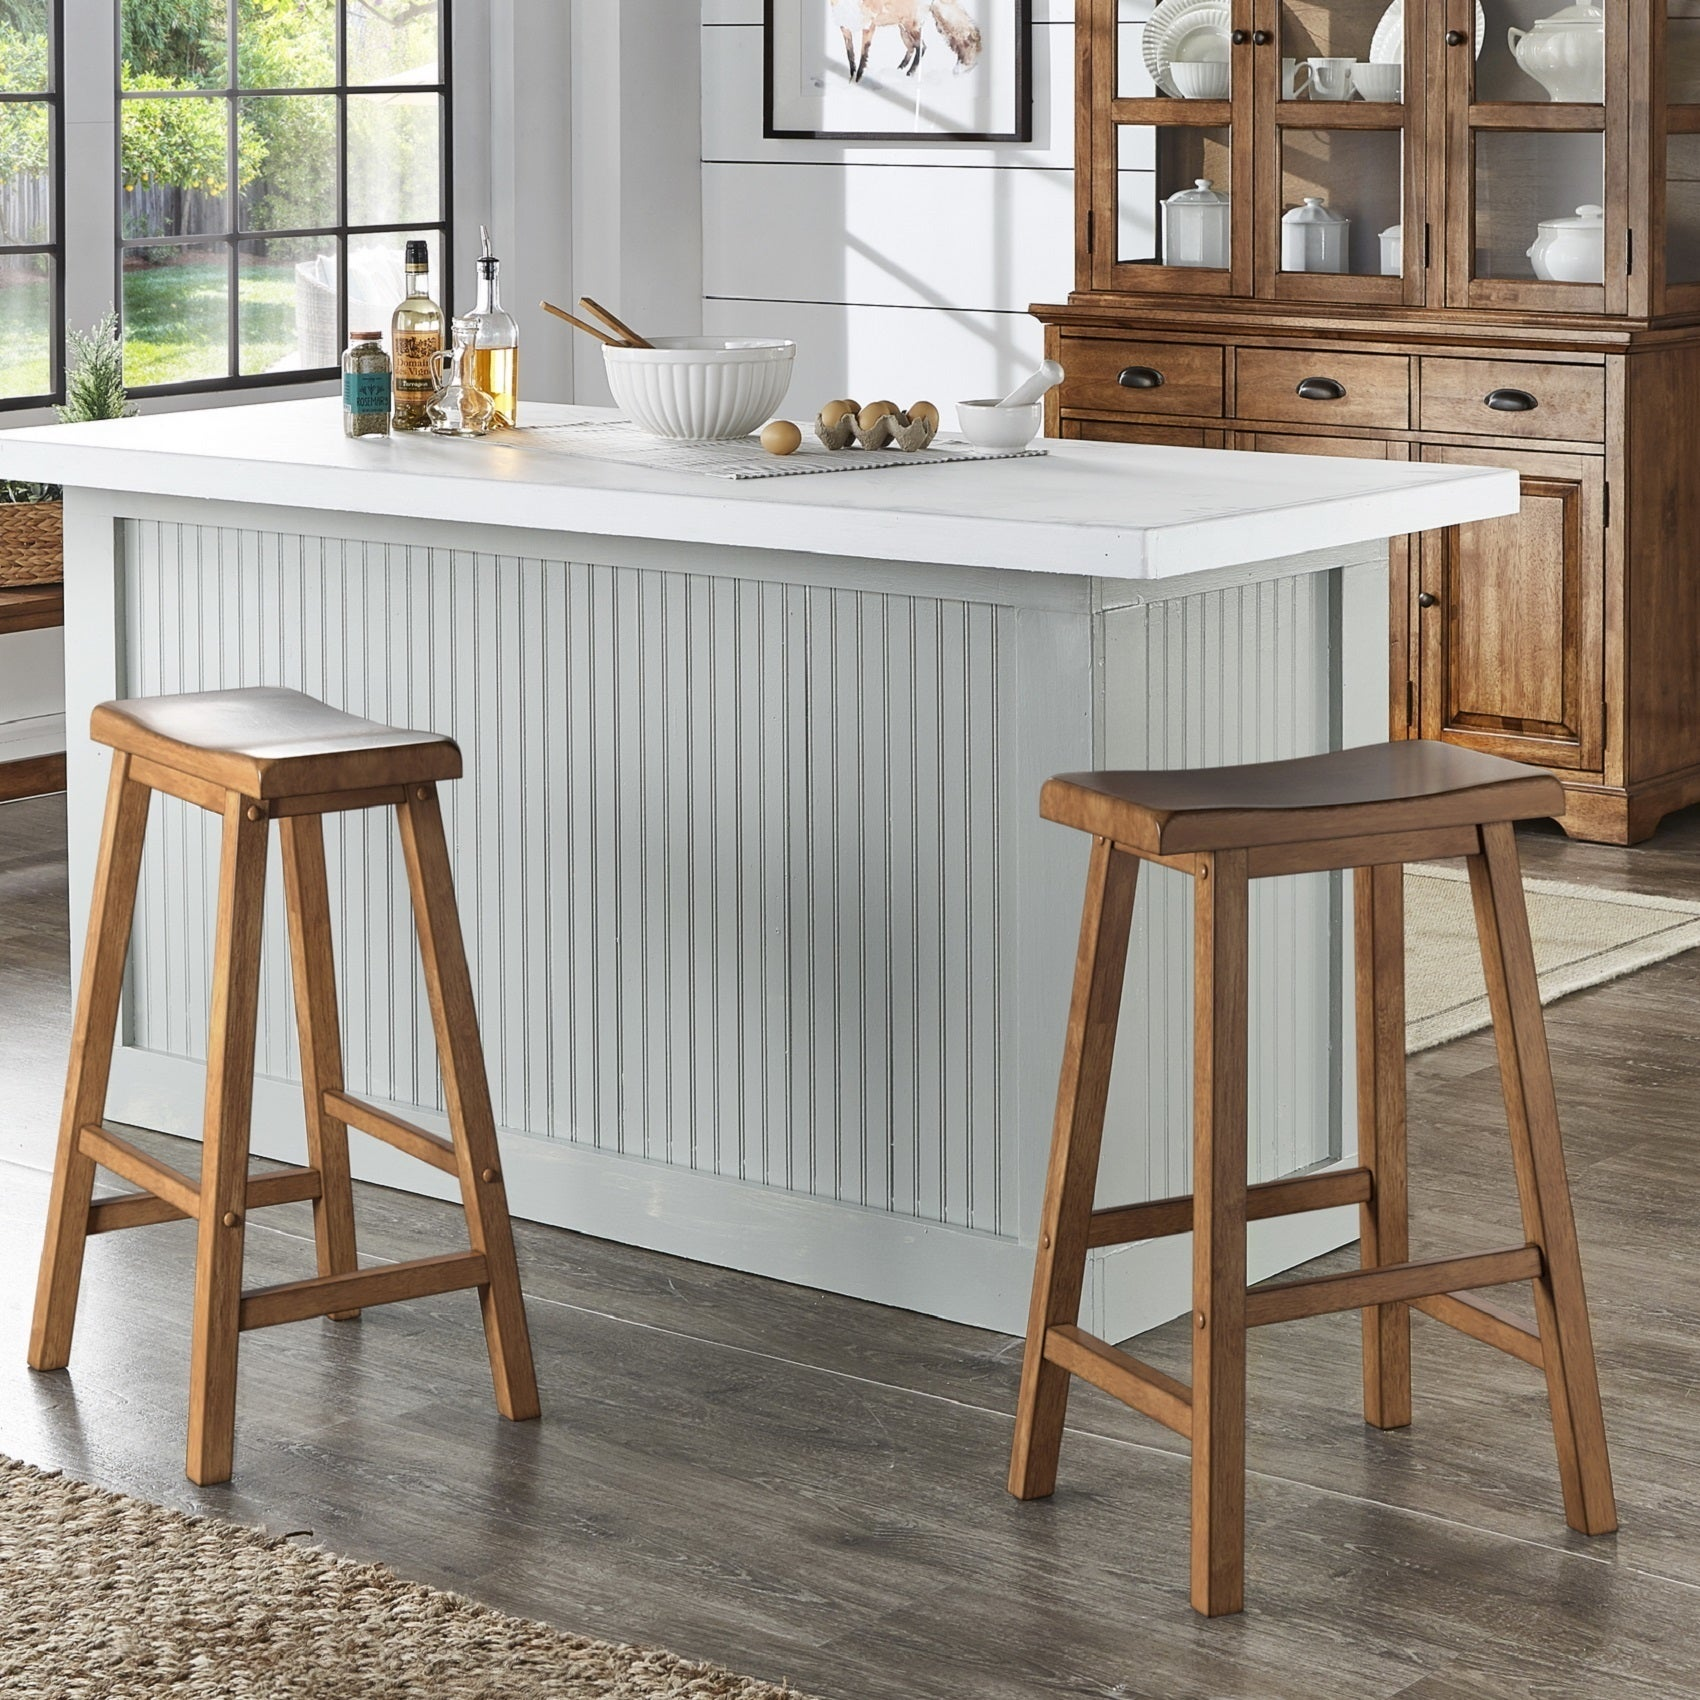 Salvador Ii Saddle Seat 29 Inch Bar Height Backless Stools Set Of 2 By Inspire Q Classic On Sale Overstock 21786004 Antique White